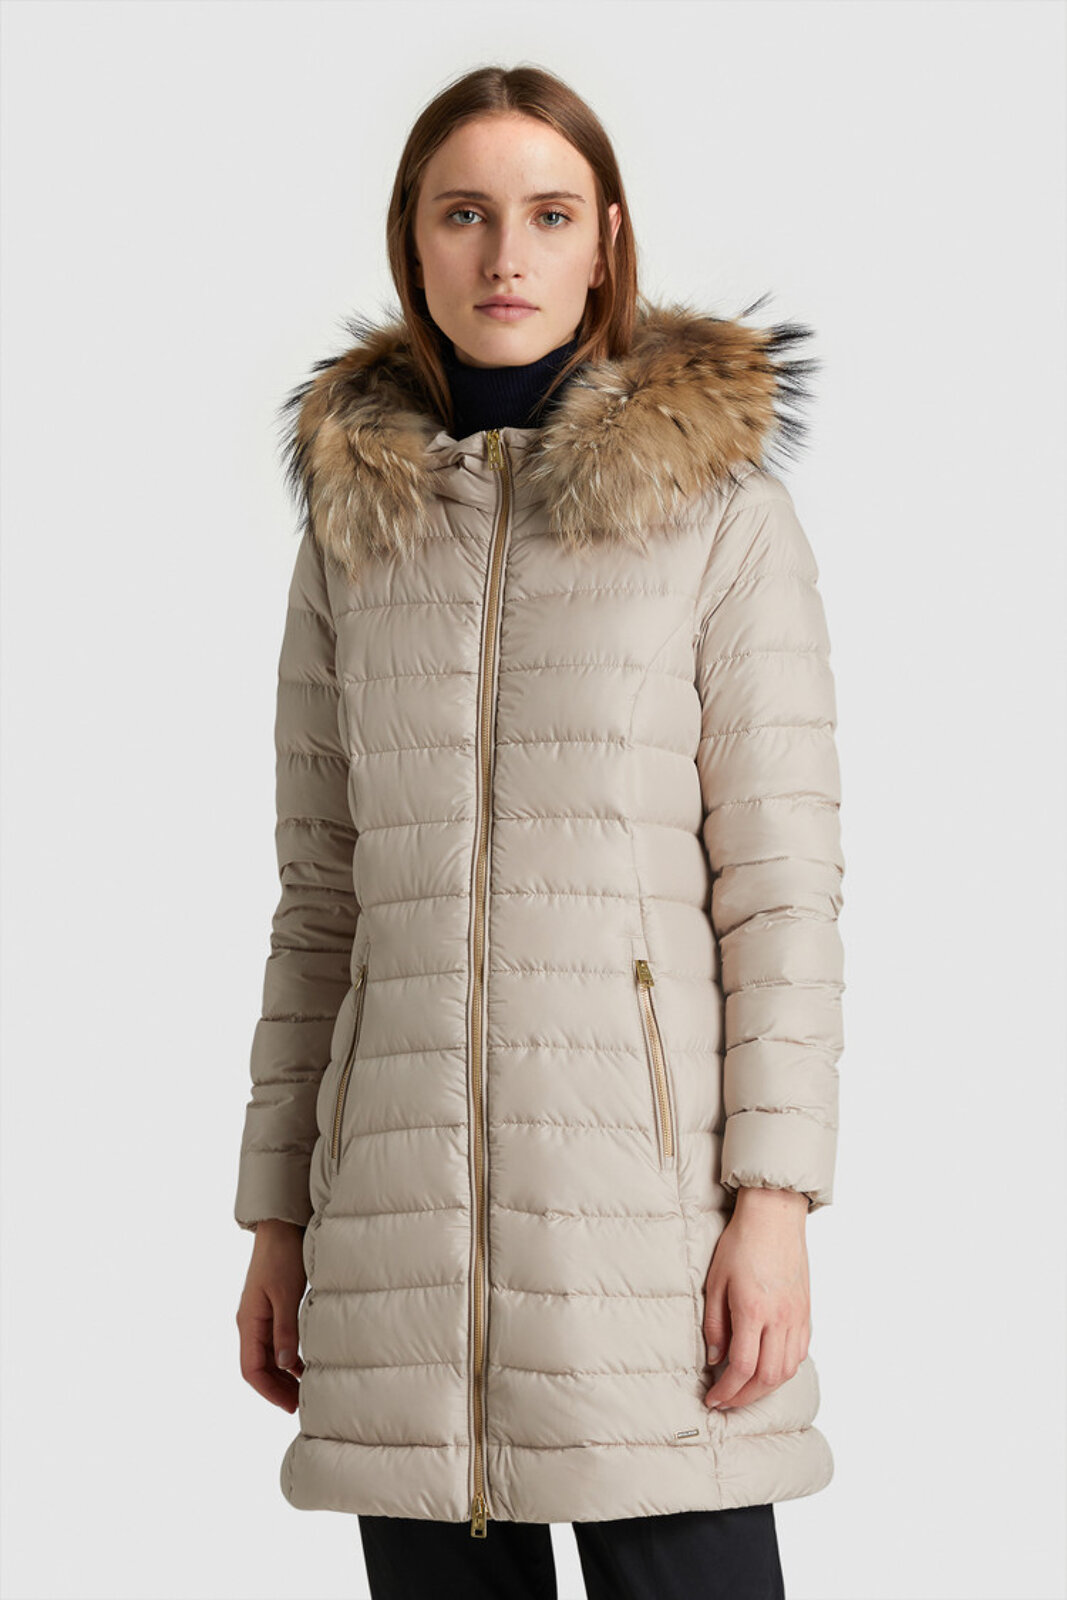 Ellis Long Padded Jacket - Woolrich